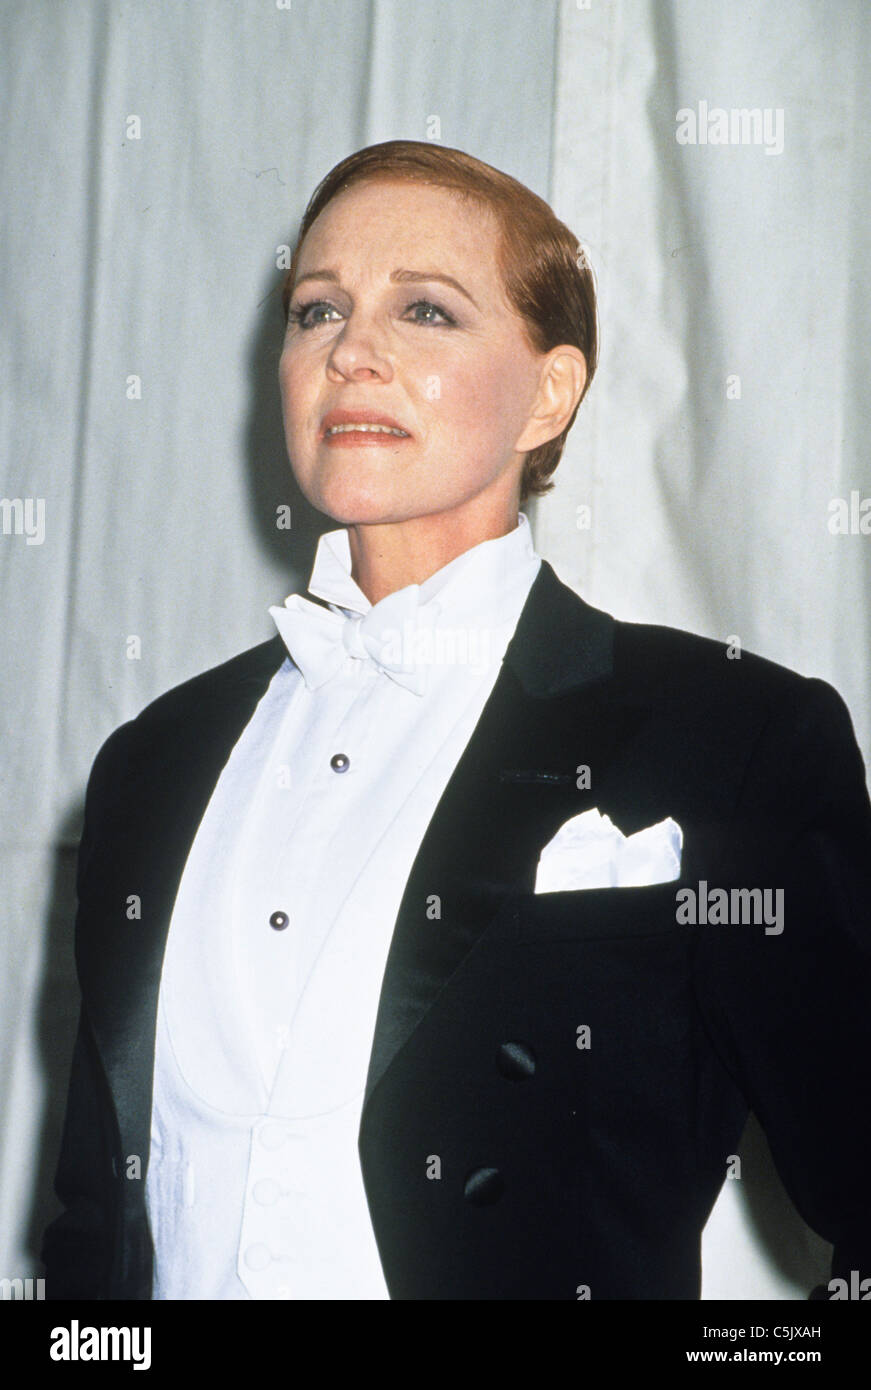 julie andrews in victor victoria,1982 - Stock Image